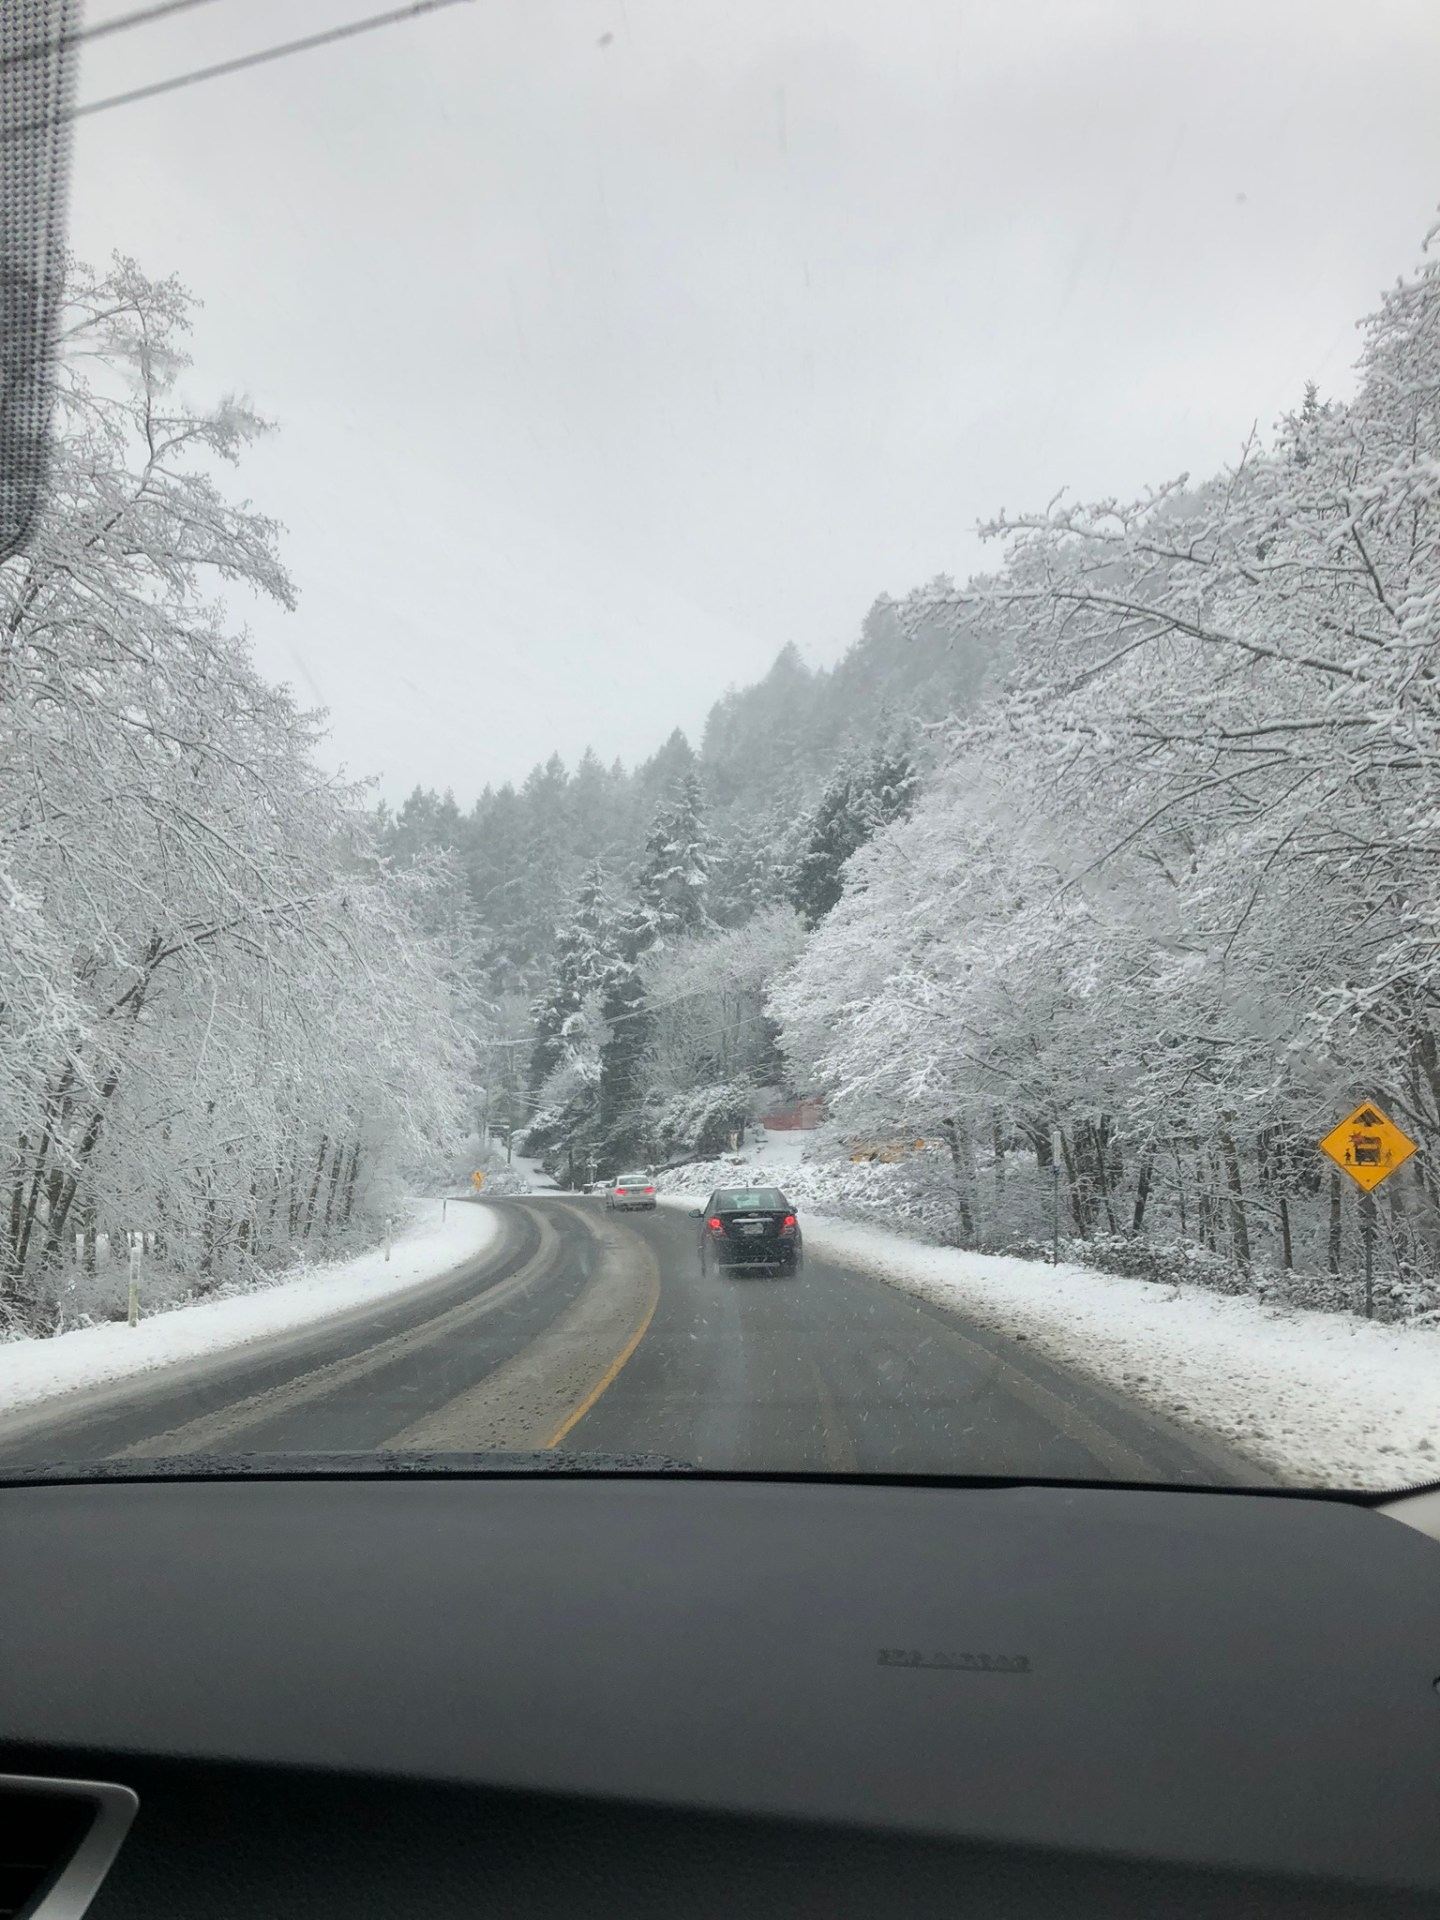 Snow on the road from Victoria, British Columbia to Port Renfrew